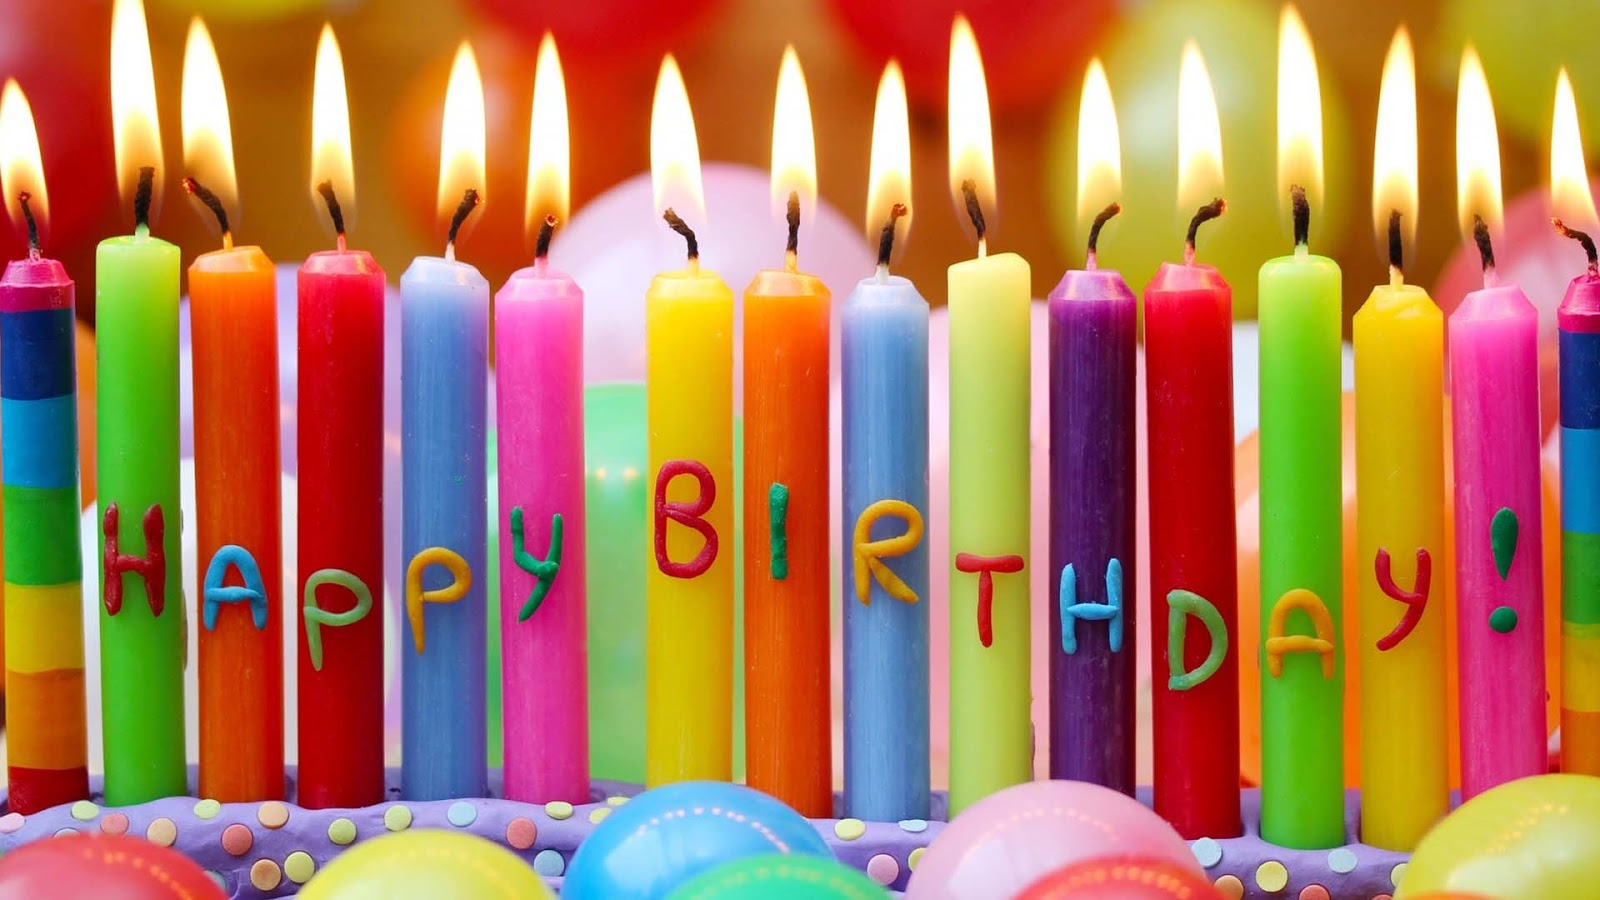 happy birthday day wallpaper ; happy-birth-day-candles-wallpapers-hd